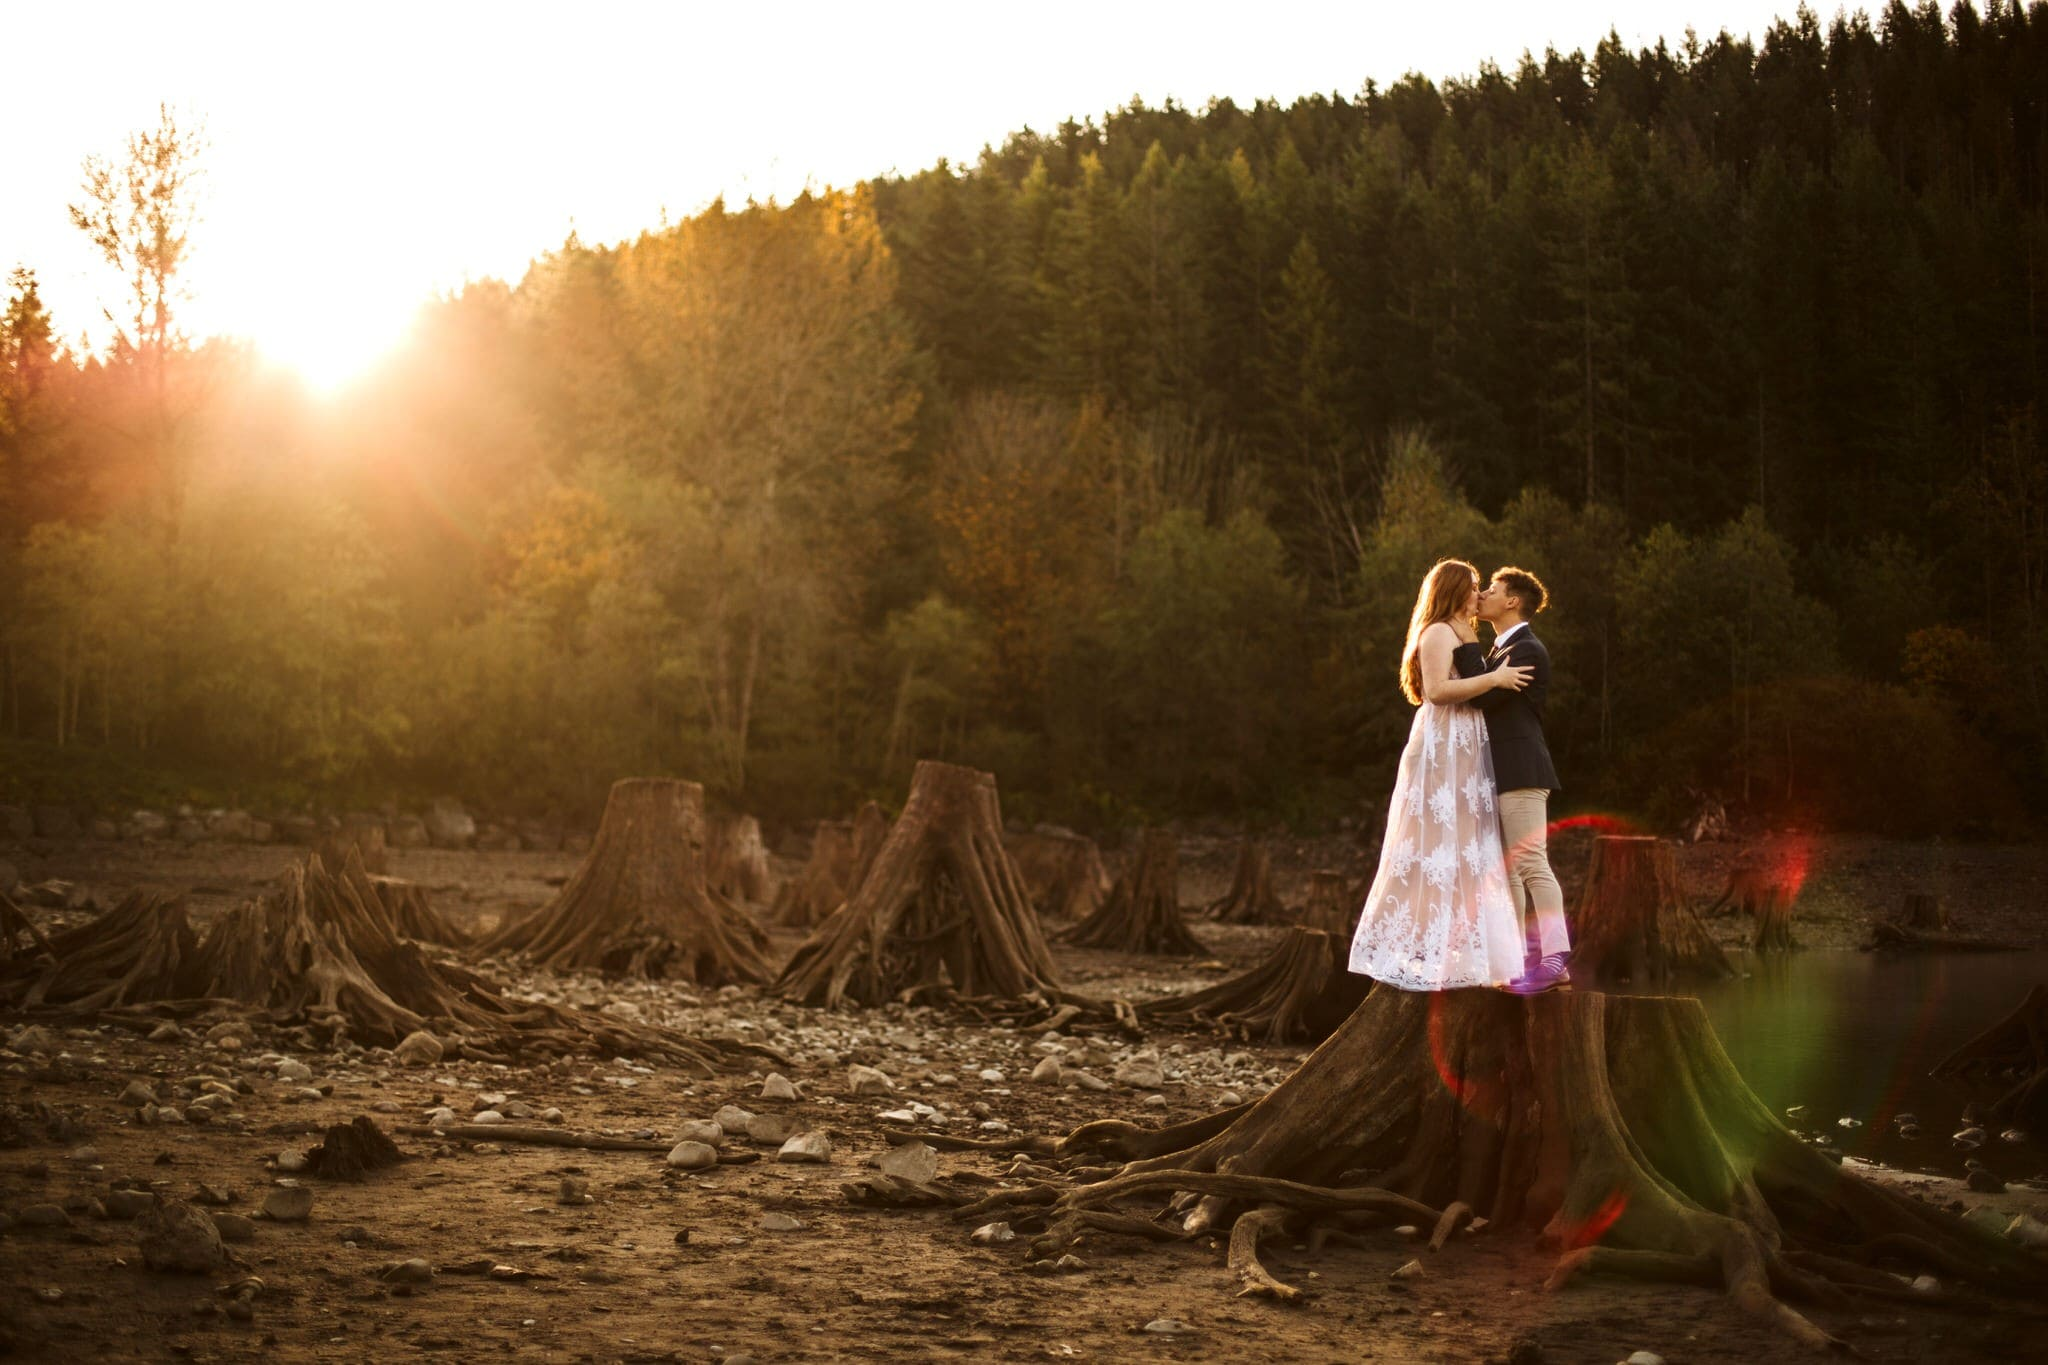 GSWK0347 Seattle and Snohomish Wedding and Engagement Photography by GSquared Weddings Photography